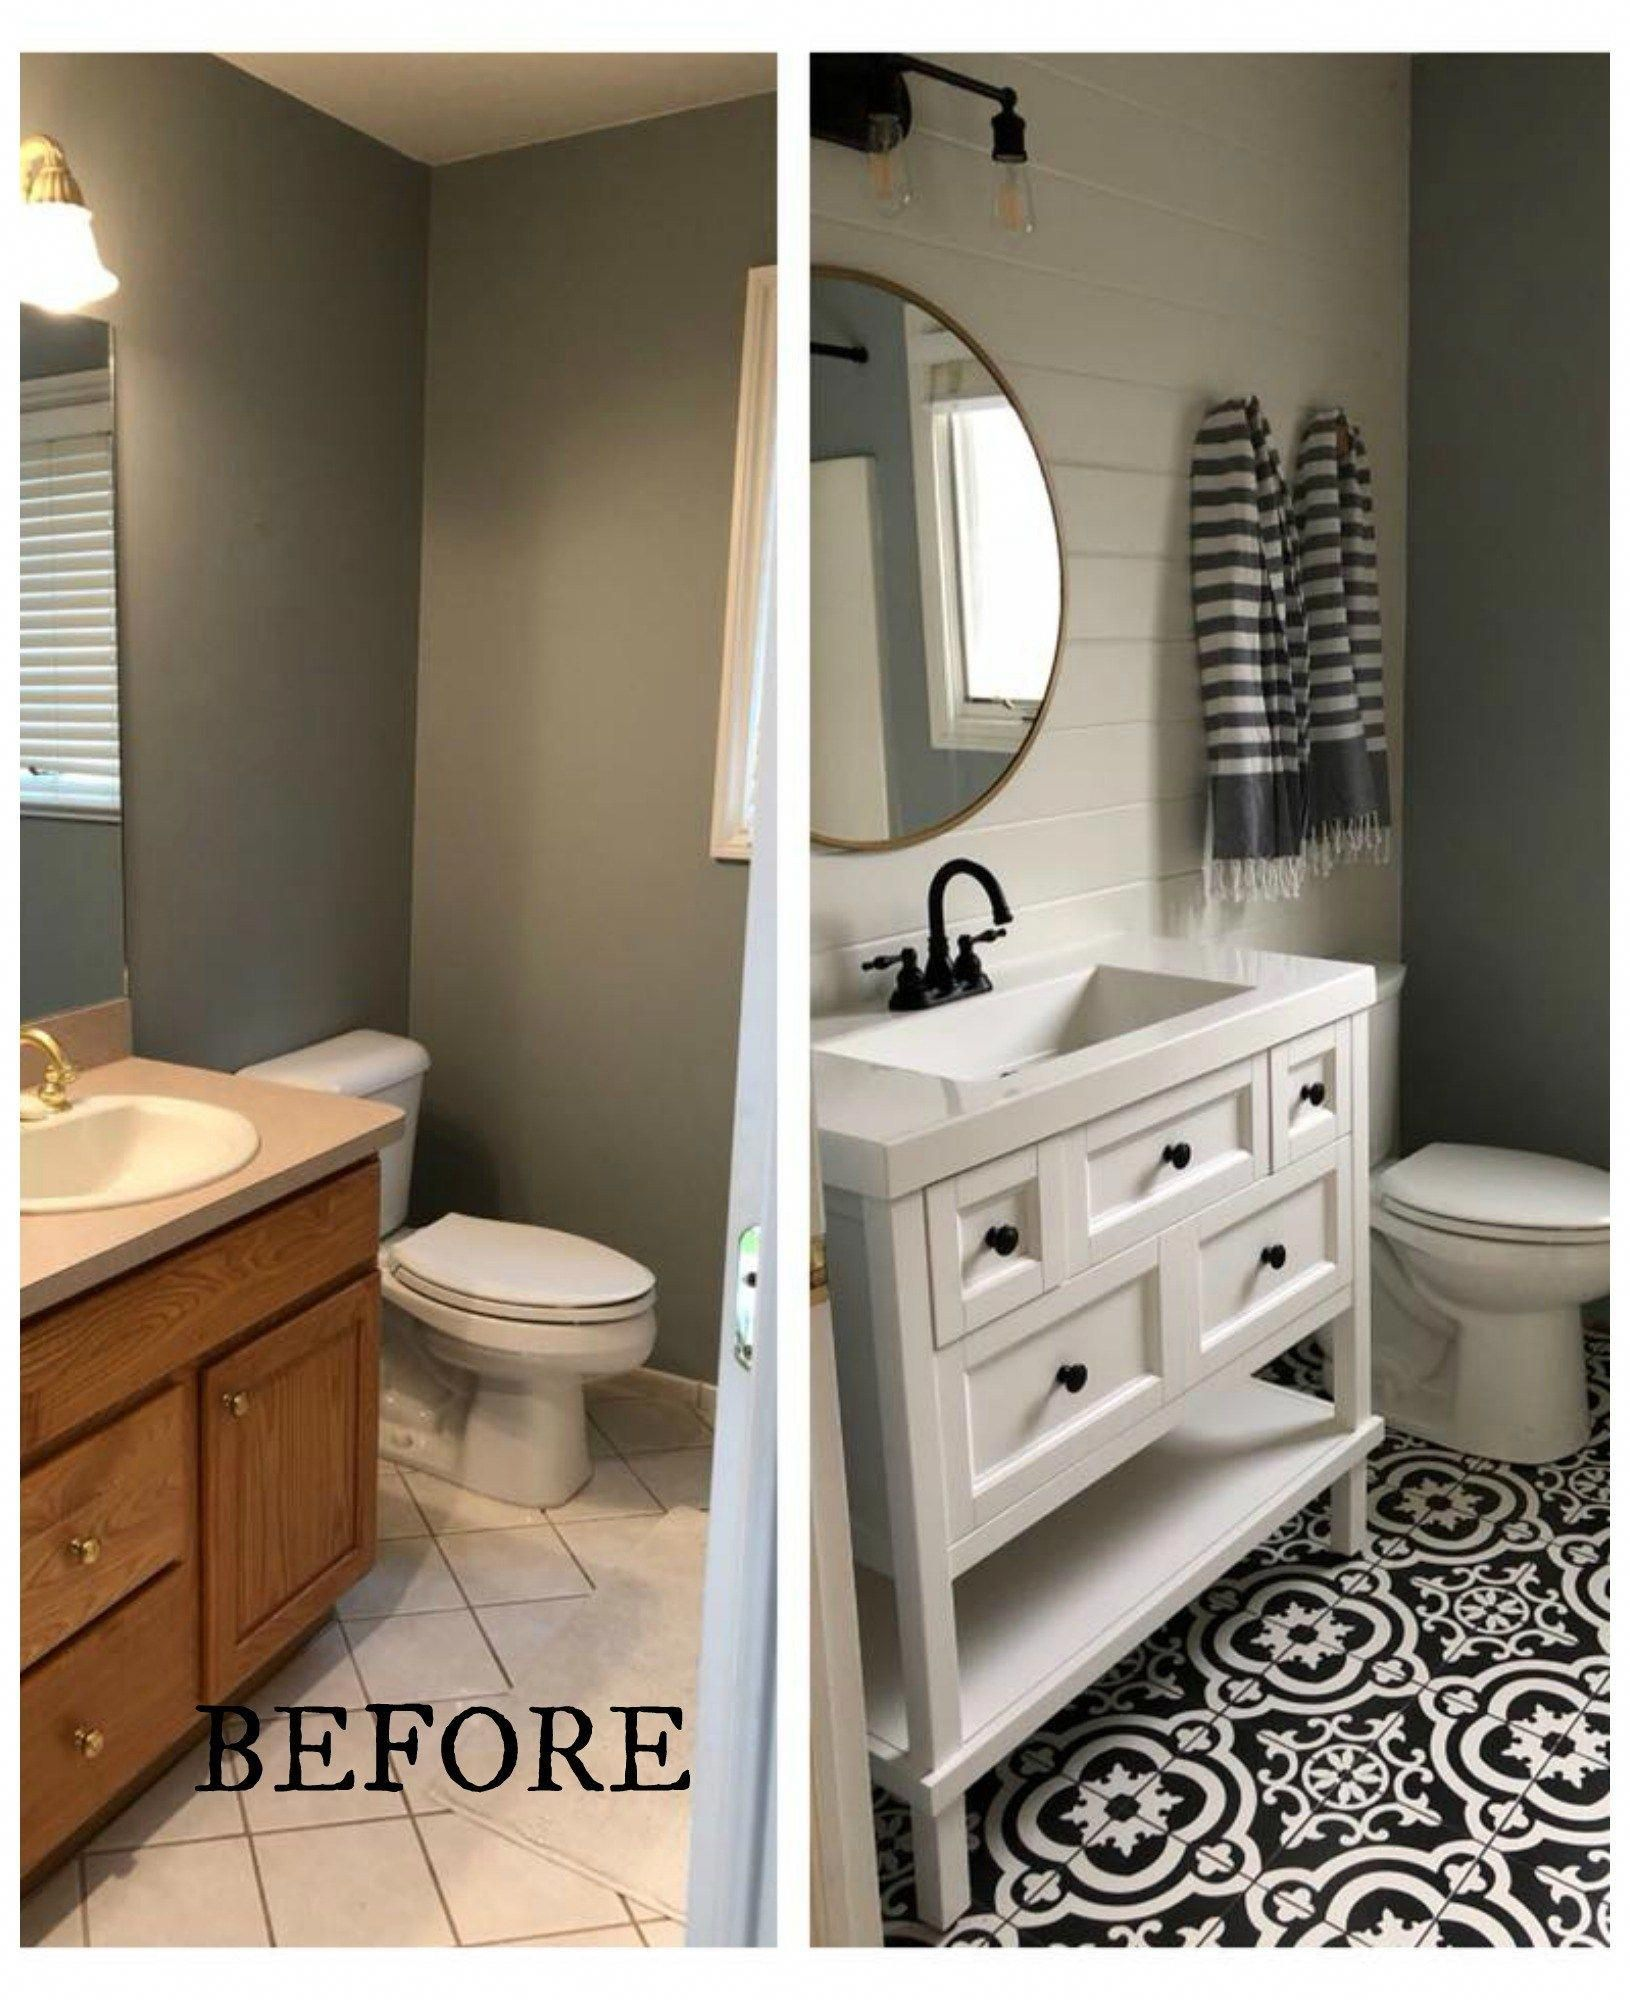 Masterful Extended Bathroom Remodel On A Budget Learn The Facts Here Now Diy Bathroom Makeover Budget Bathroom Remodel Bathroom Makeover